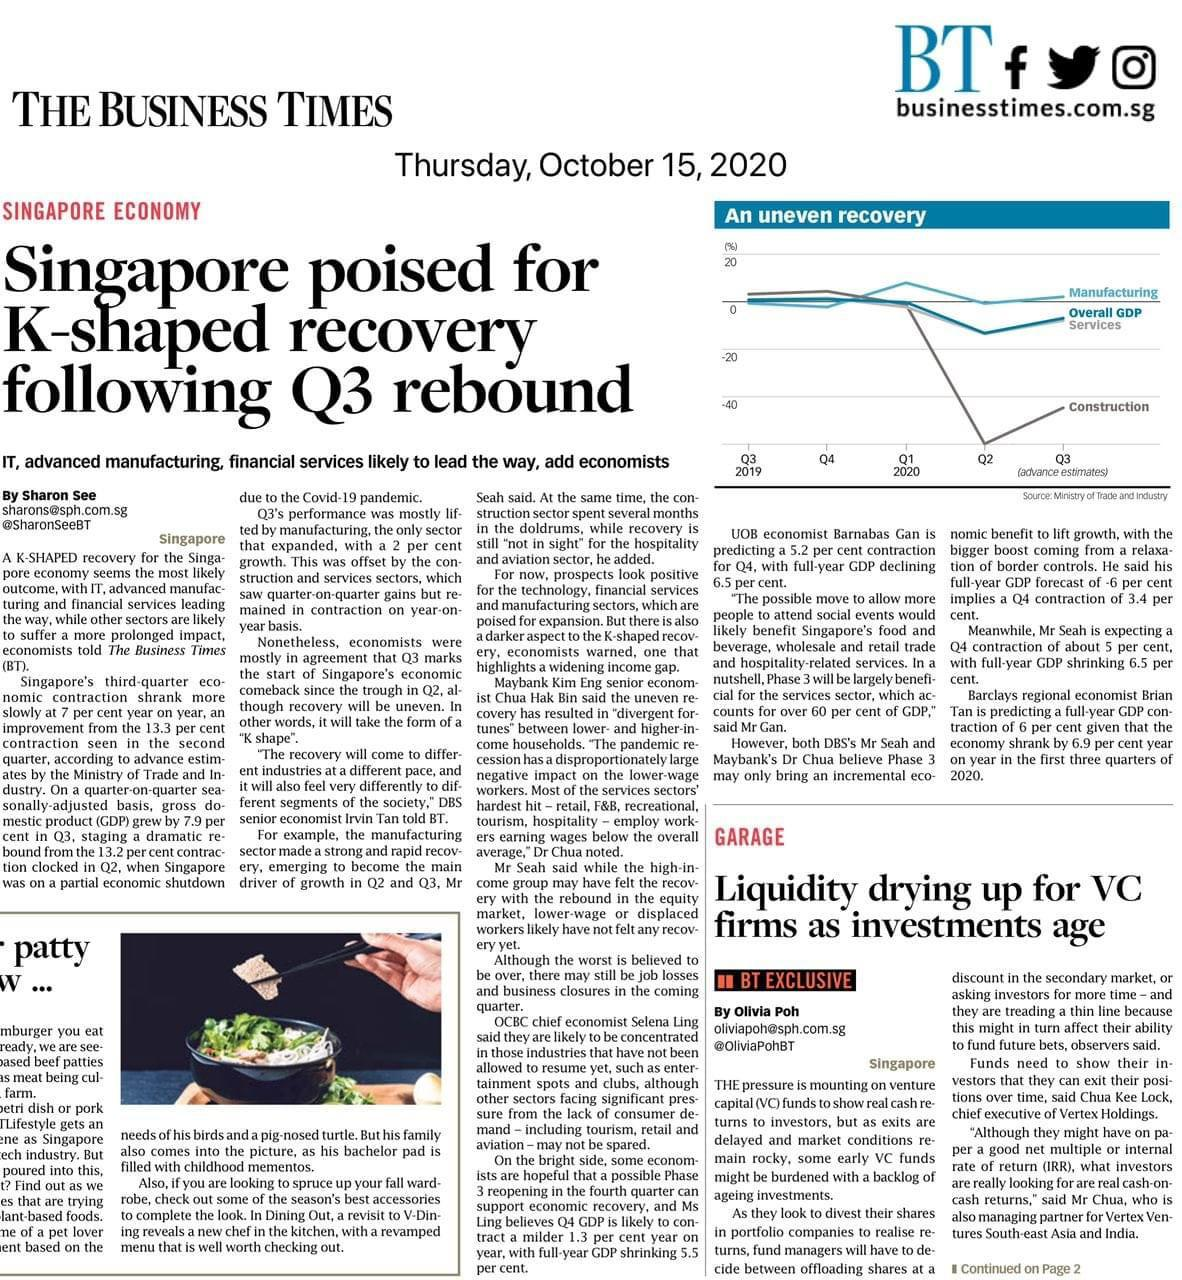 ingapore poised for K shaped recovery following Q3 rebound